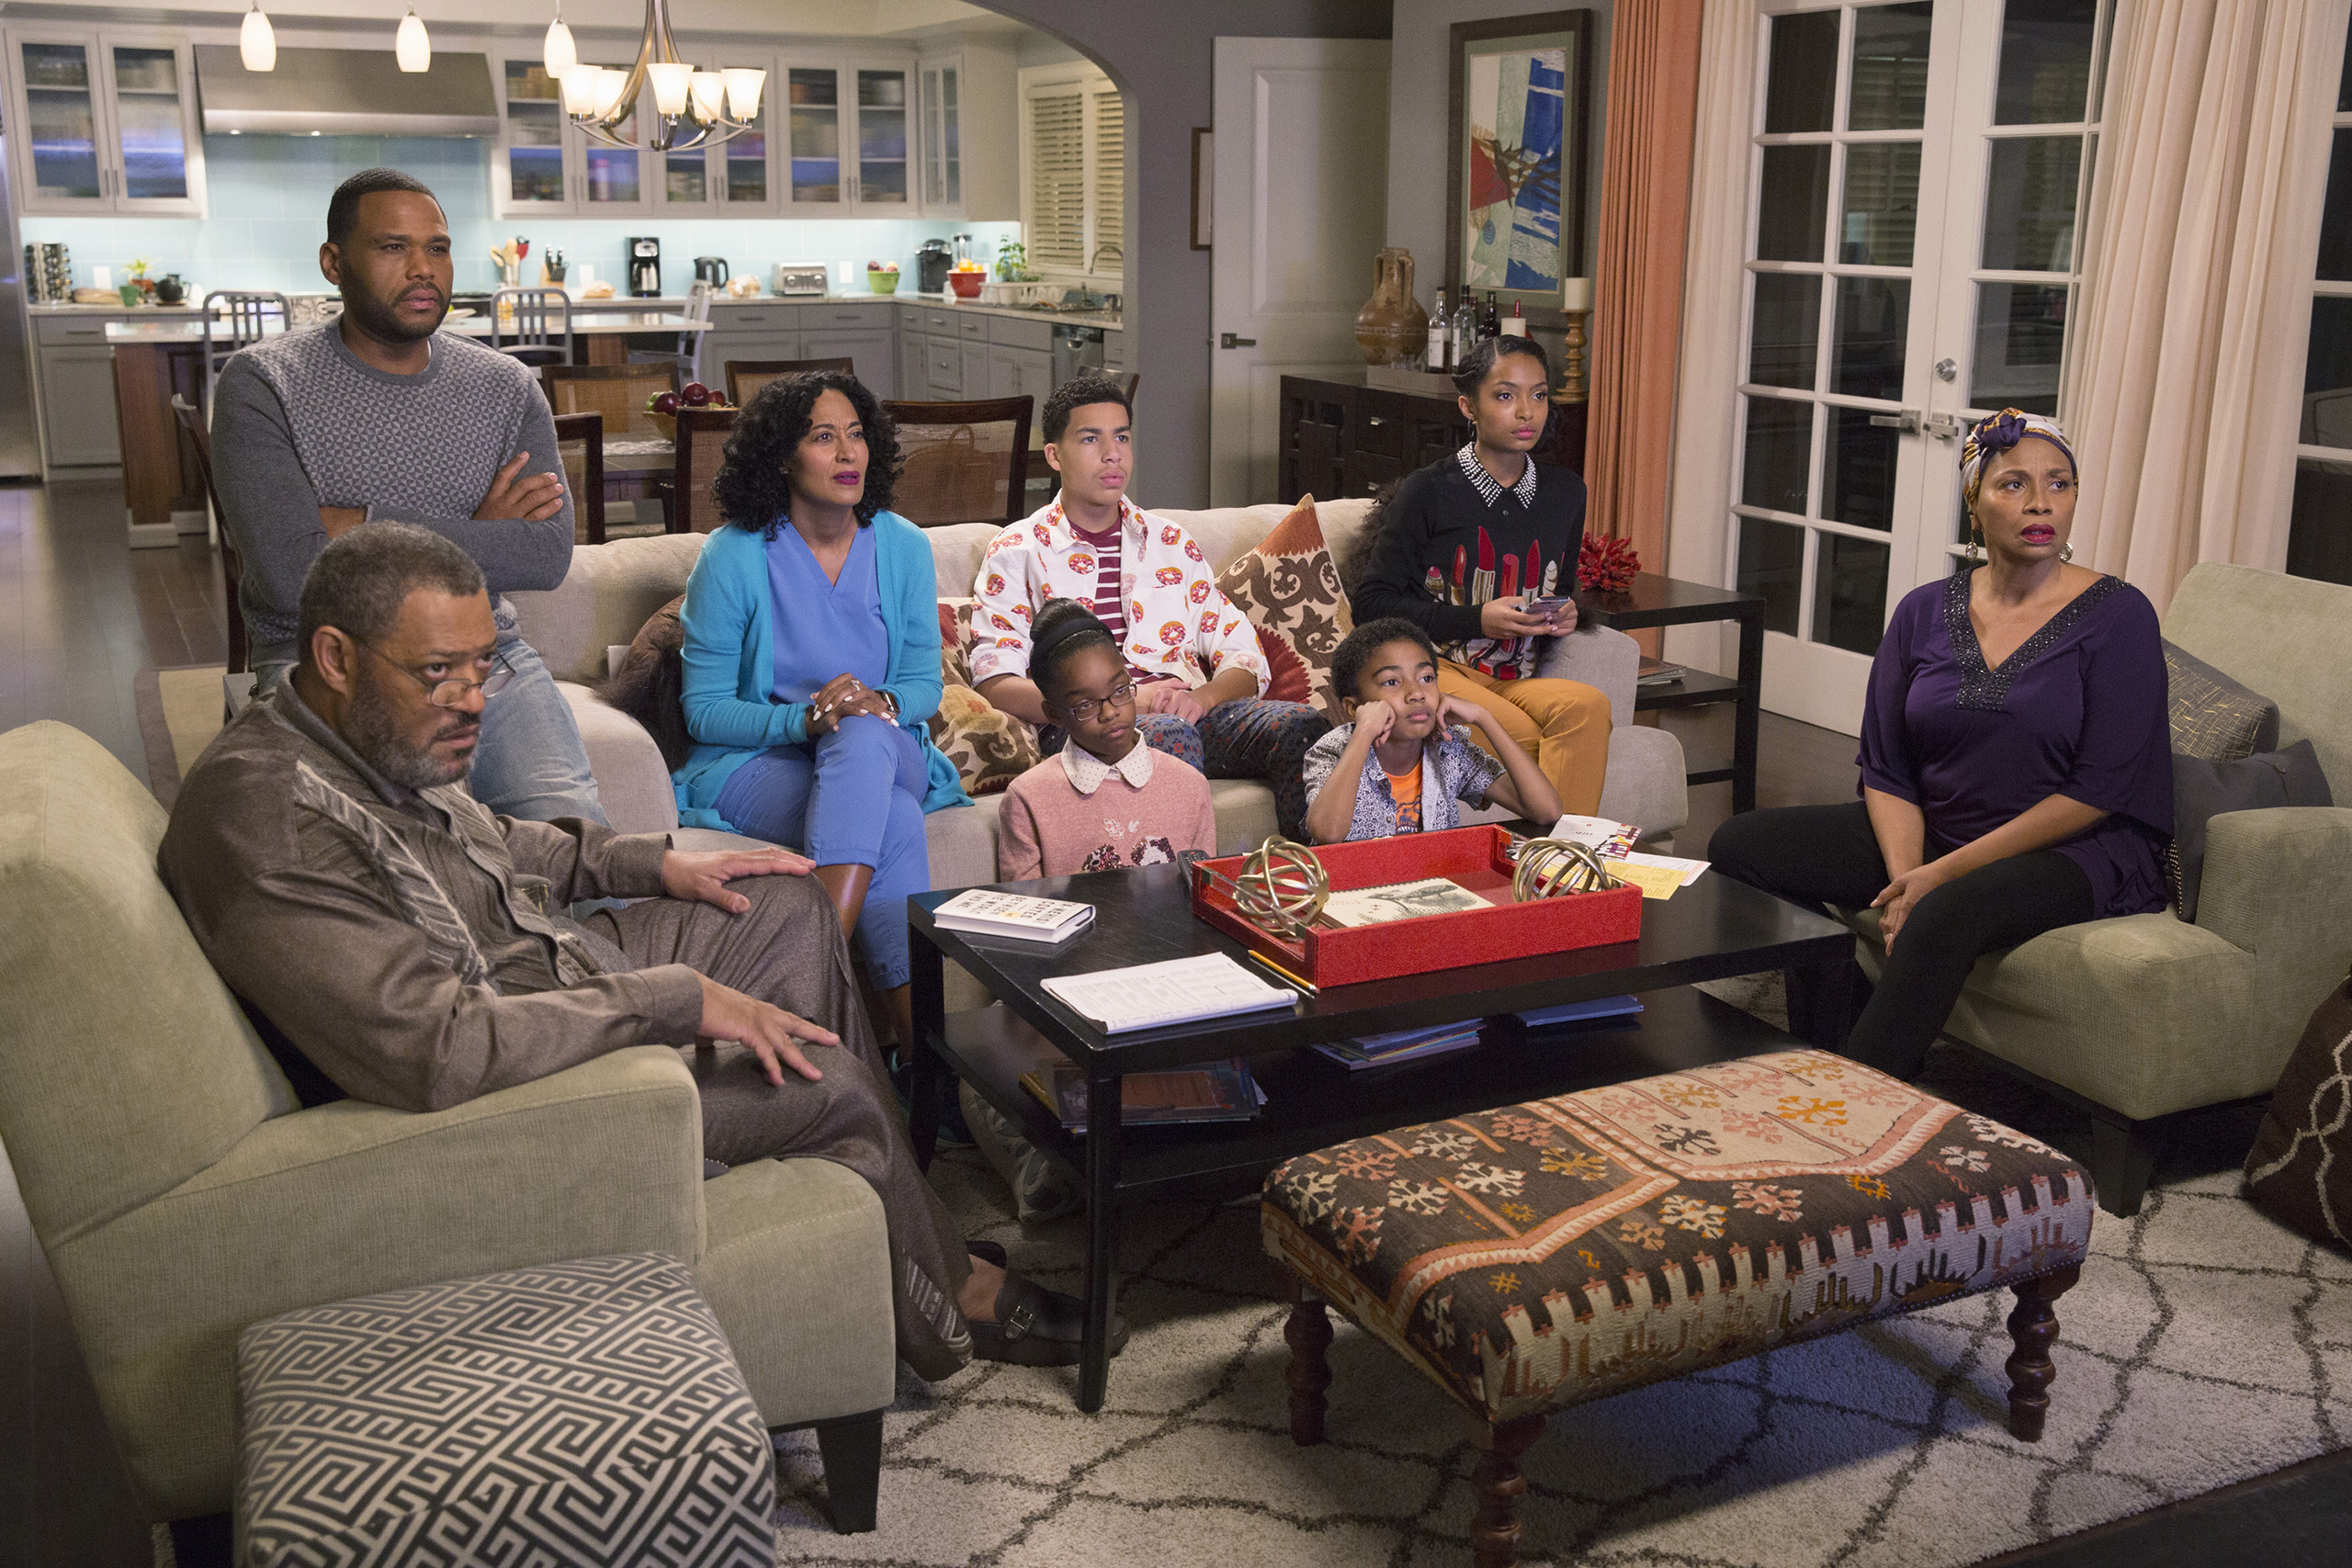 BLACK-ISH -  Hope  - When the kids ask some tough questions in the midst of a highly publicized court case involving alleged police brutality and an African-American teenager, Dre and Bow are conflicted on how best to field them. Dre, along with Pops and Ruby, feel the kids need to know what kind of world they're living in, while Bow would like to give them a more hopeful view about life. When the verdict is announced, the family handles the news in different ways while watching the community react, on  black-ish,  WEDNESDAY, FEBRUARY 24 (9:31-10:00 p.m. EST) on the ABC Television Network. (Patrick Wymore/ABC via Getty Images) LAURENCE FISHBURNE, ANTHONY ANDERSON, TRACEE ELLIS ROSS, MARSAI MARTIN, MARCUS SCRIBNER, MILES BROWN, YARA SHAHIDI, JENIFER LEWIS